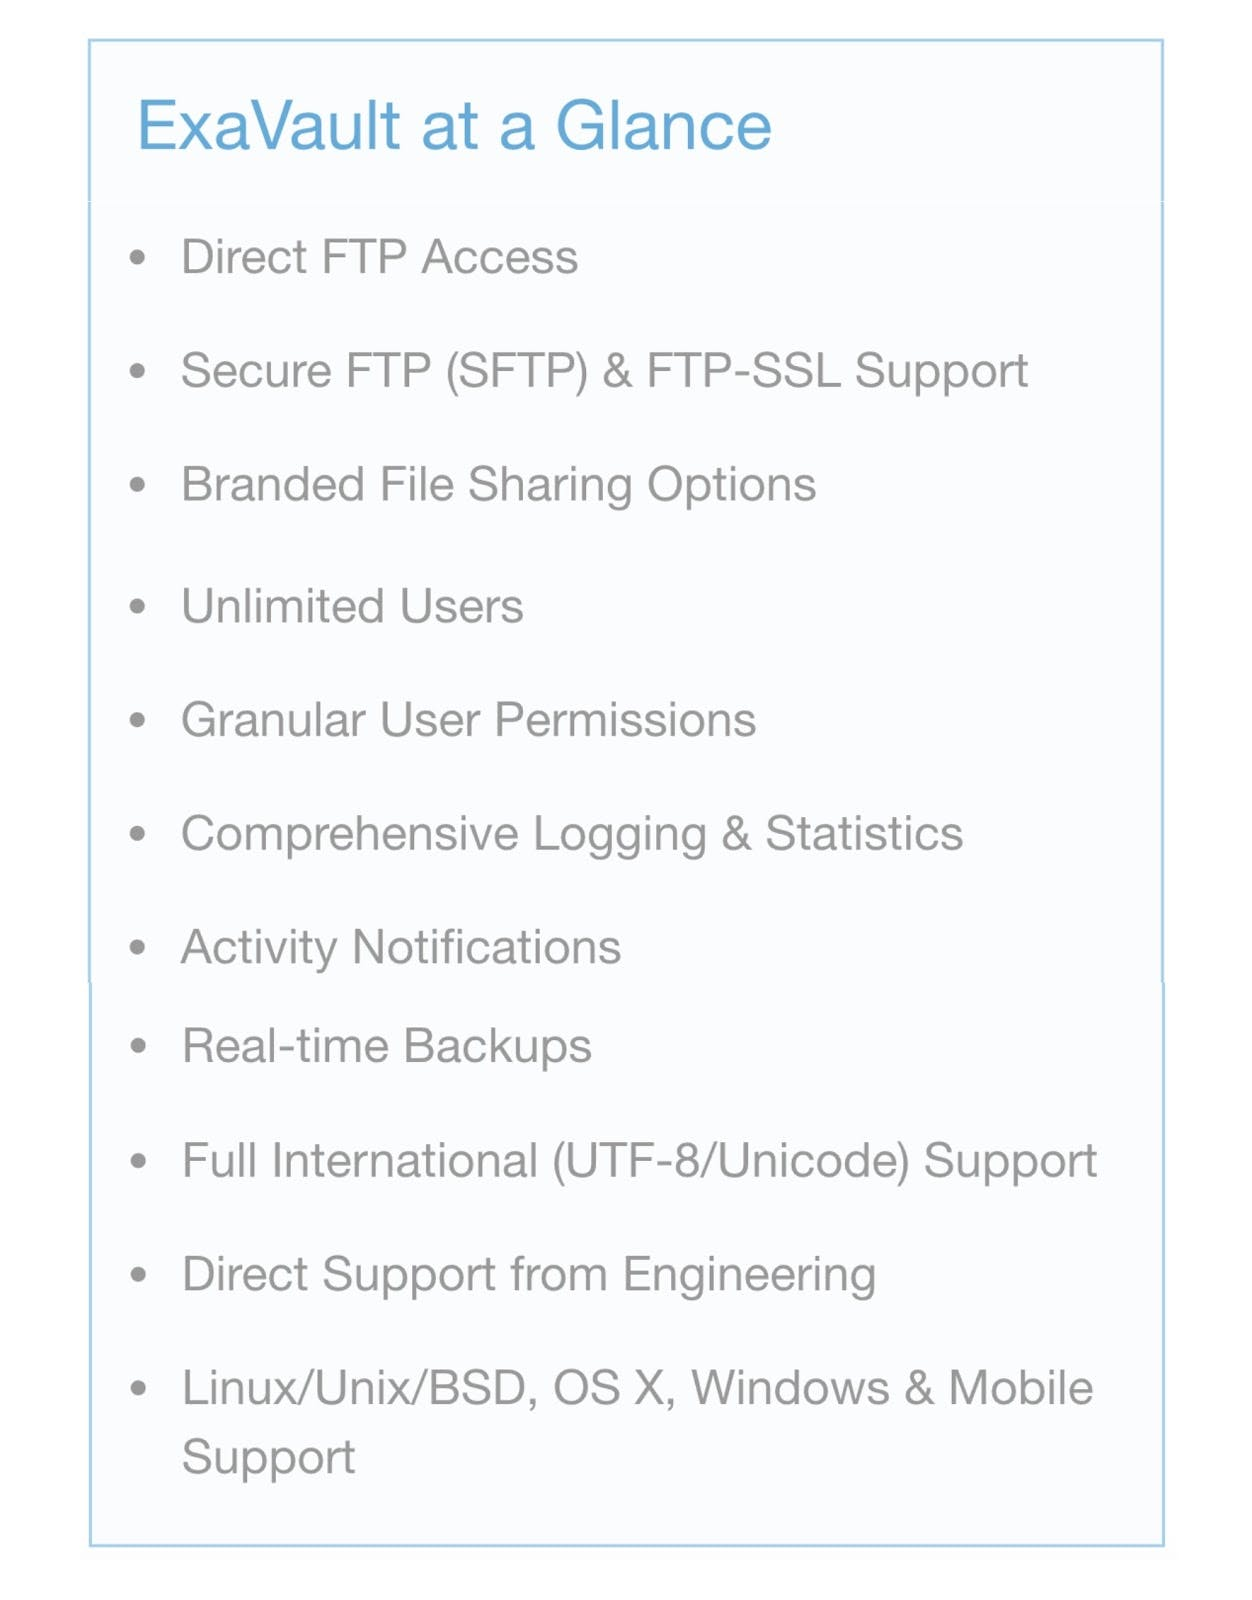 List of available FTP service features.